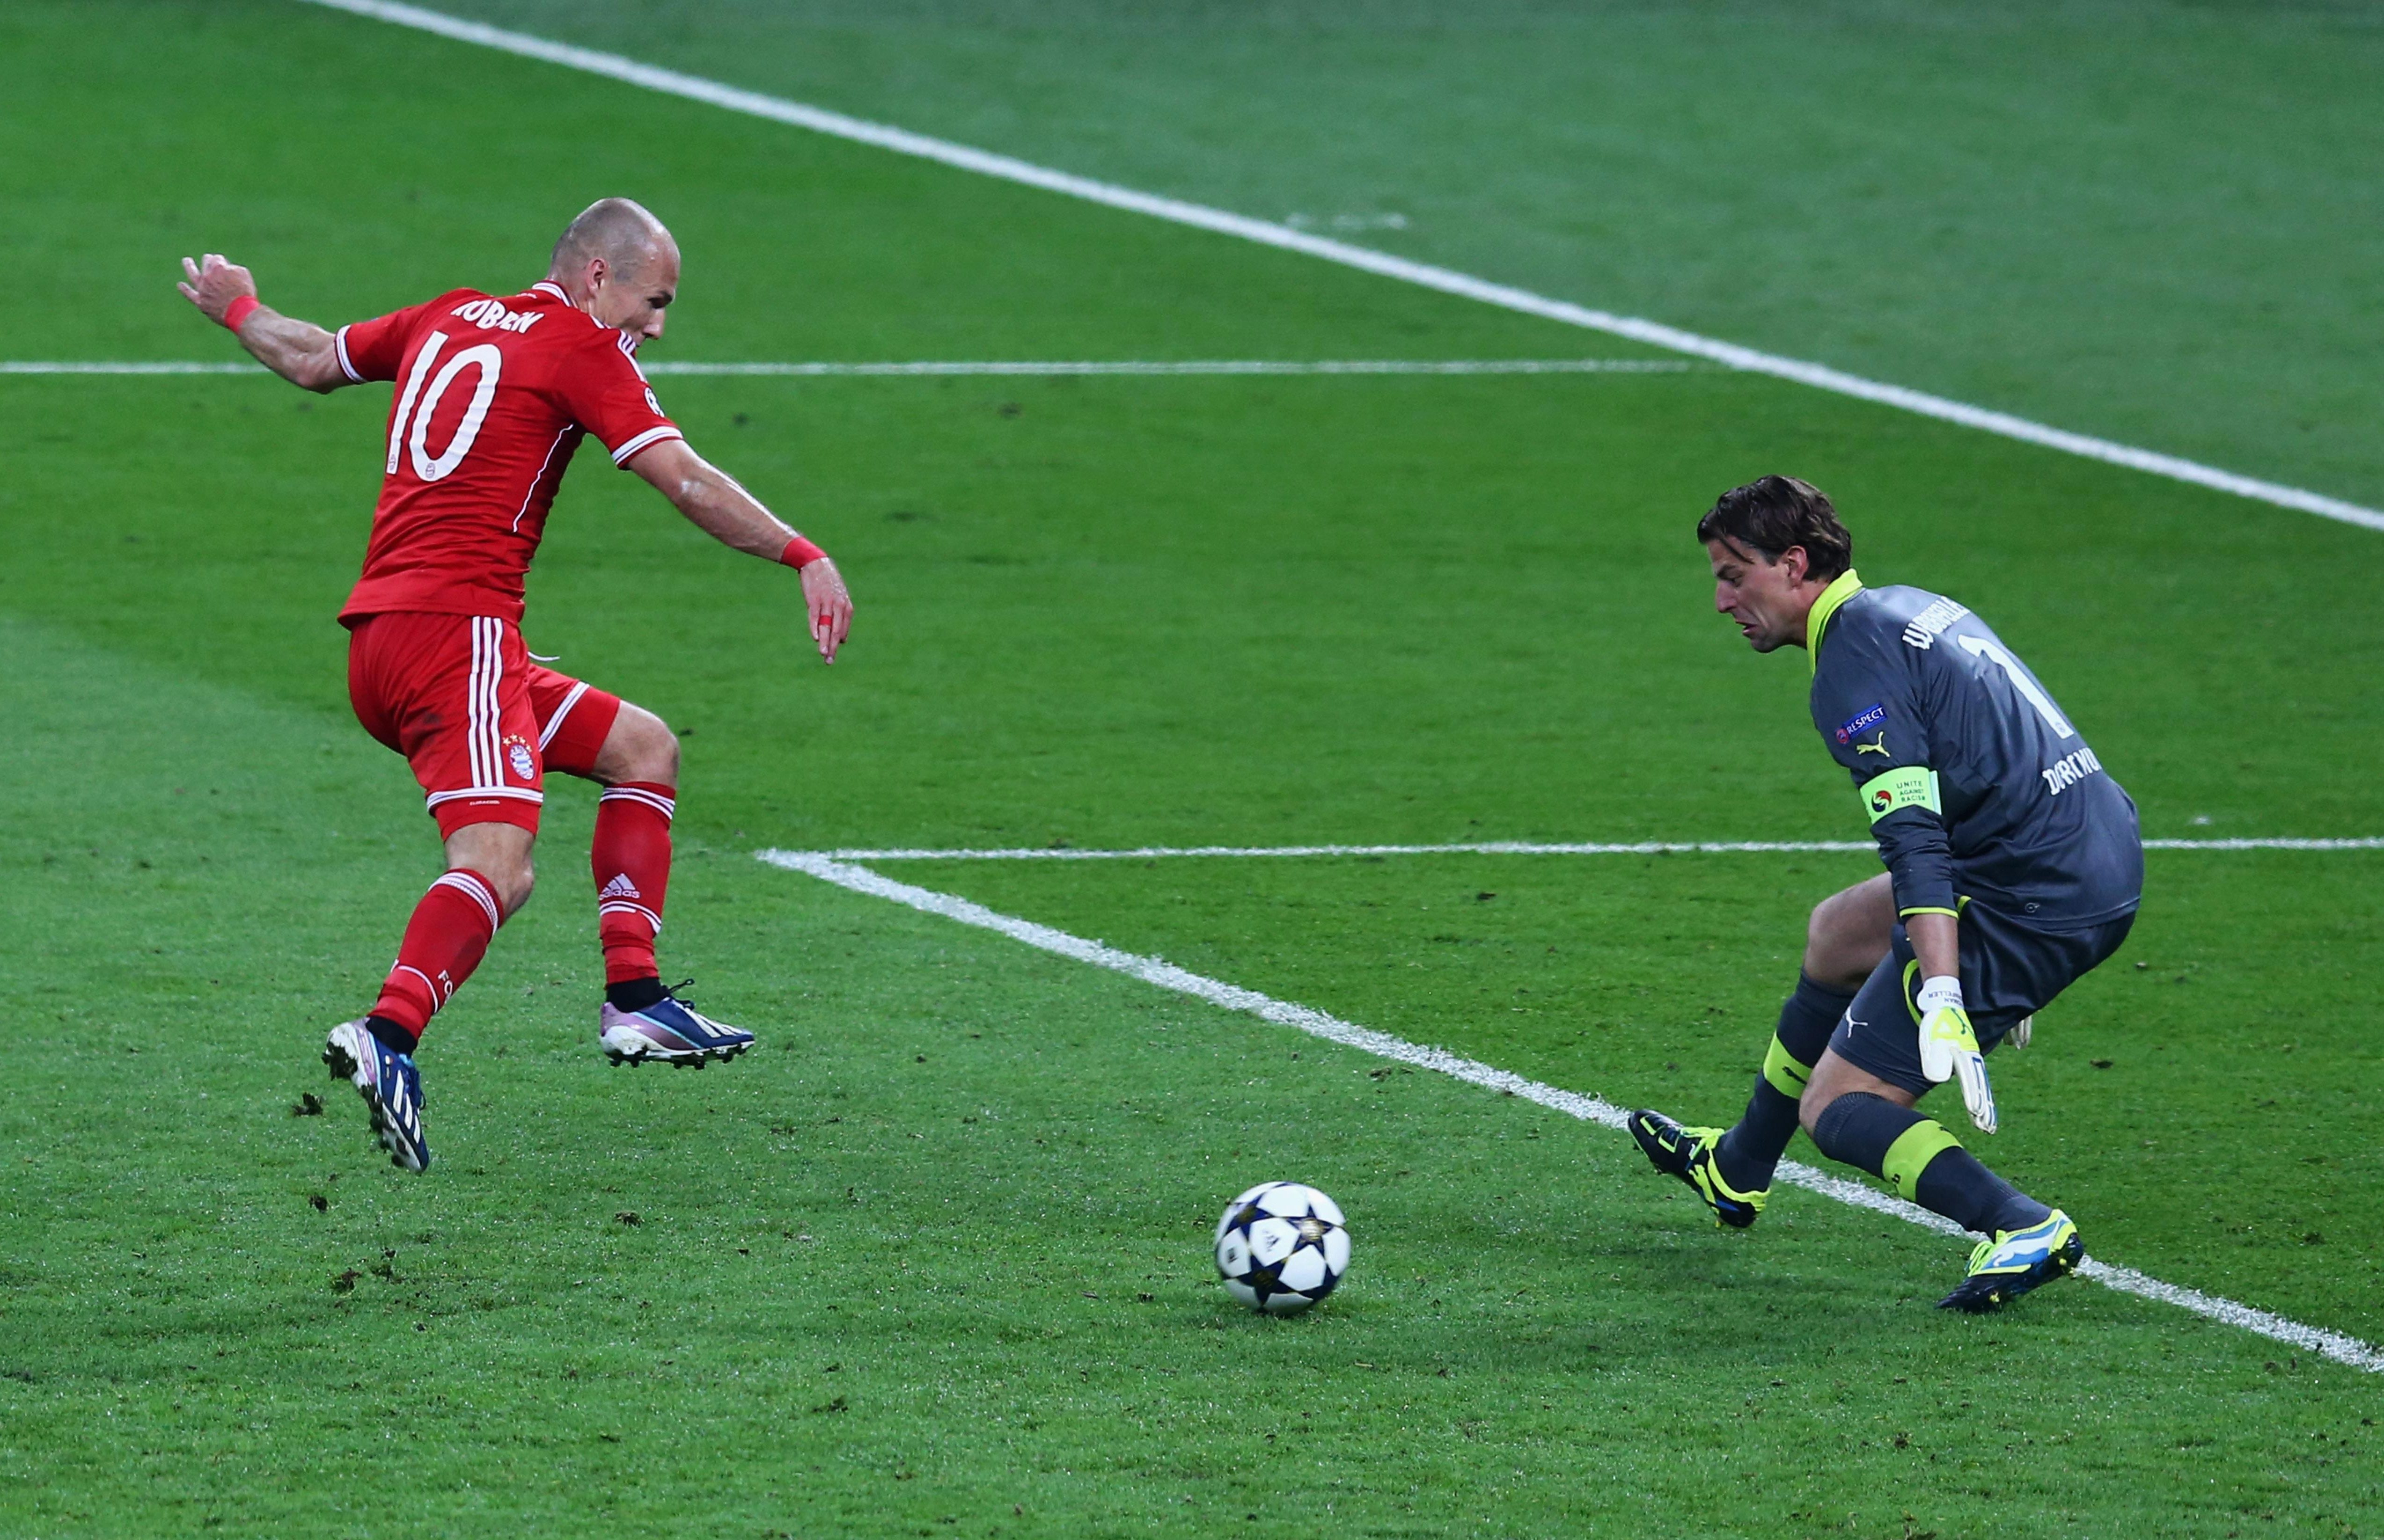 Perhaps the most important goal in Bayern's history